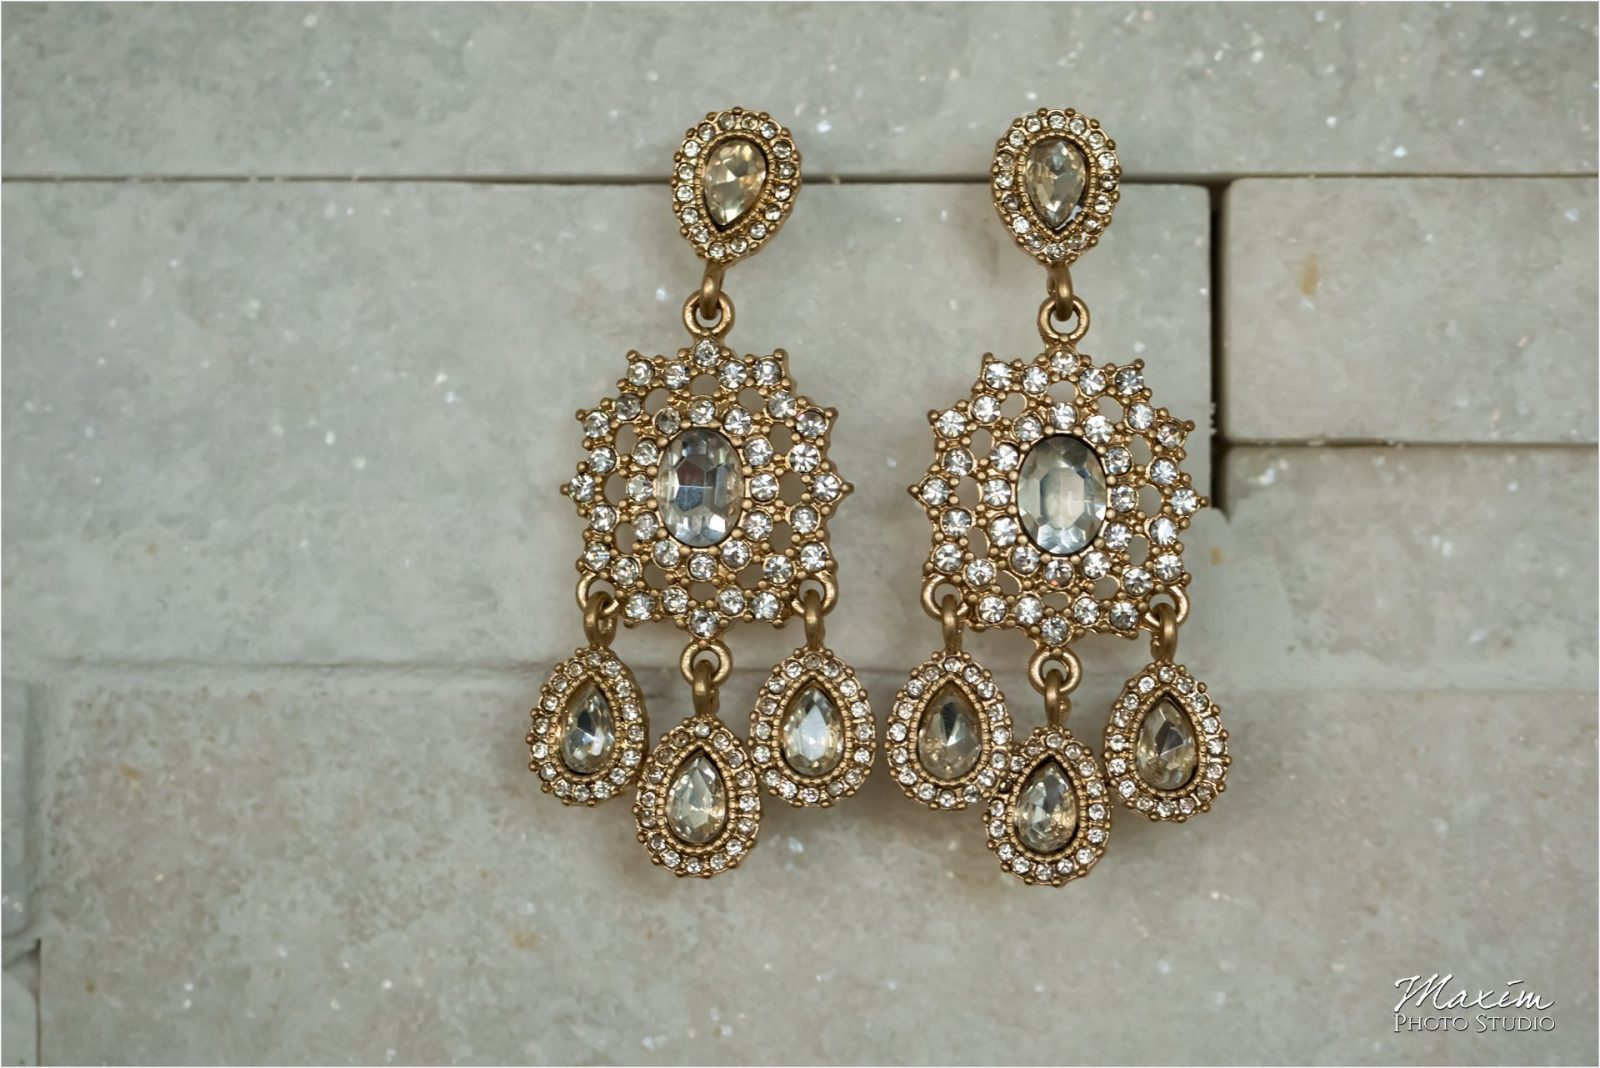 Newport Syndicate Cincinnati Wedding Bride Preparations earings